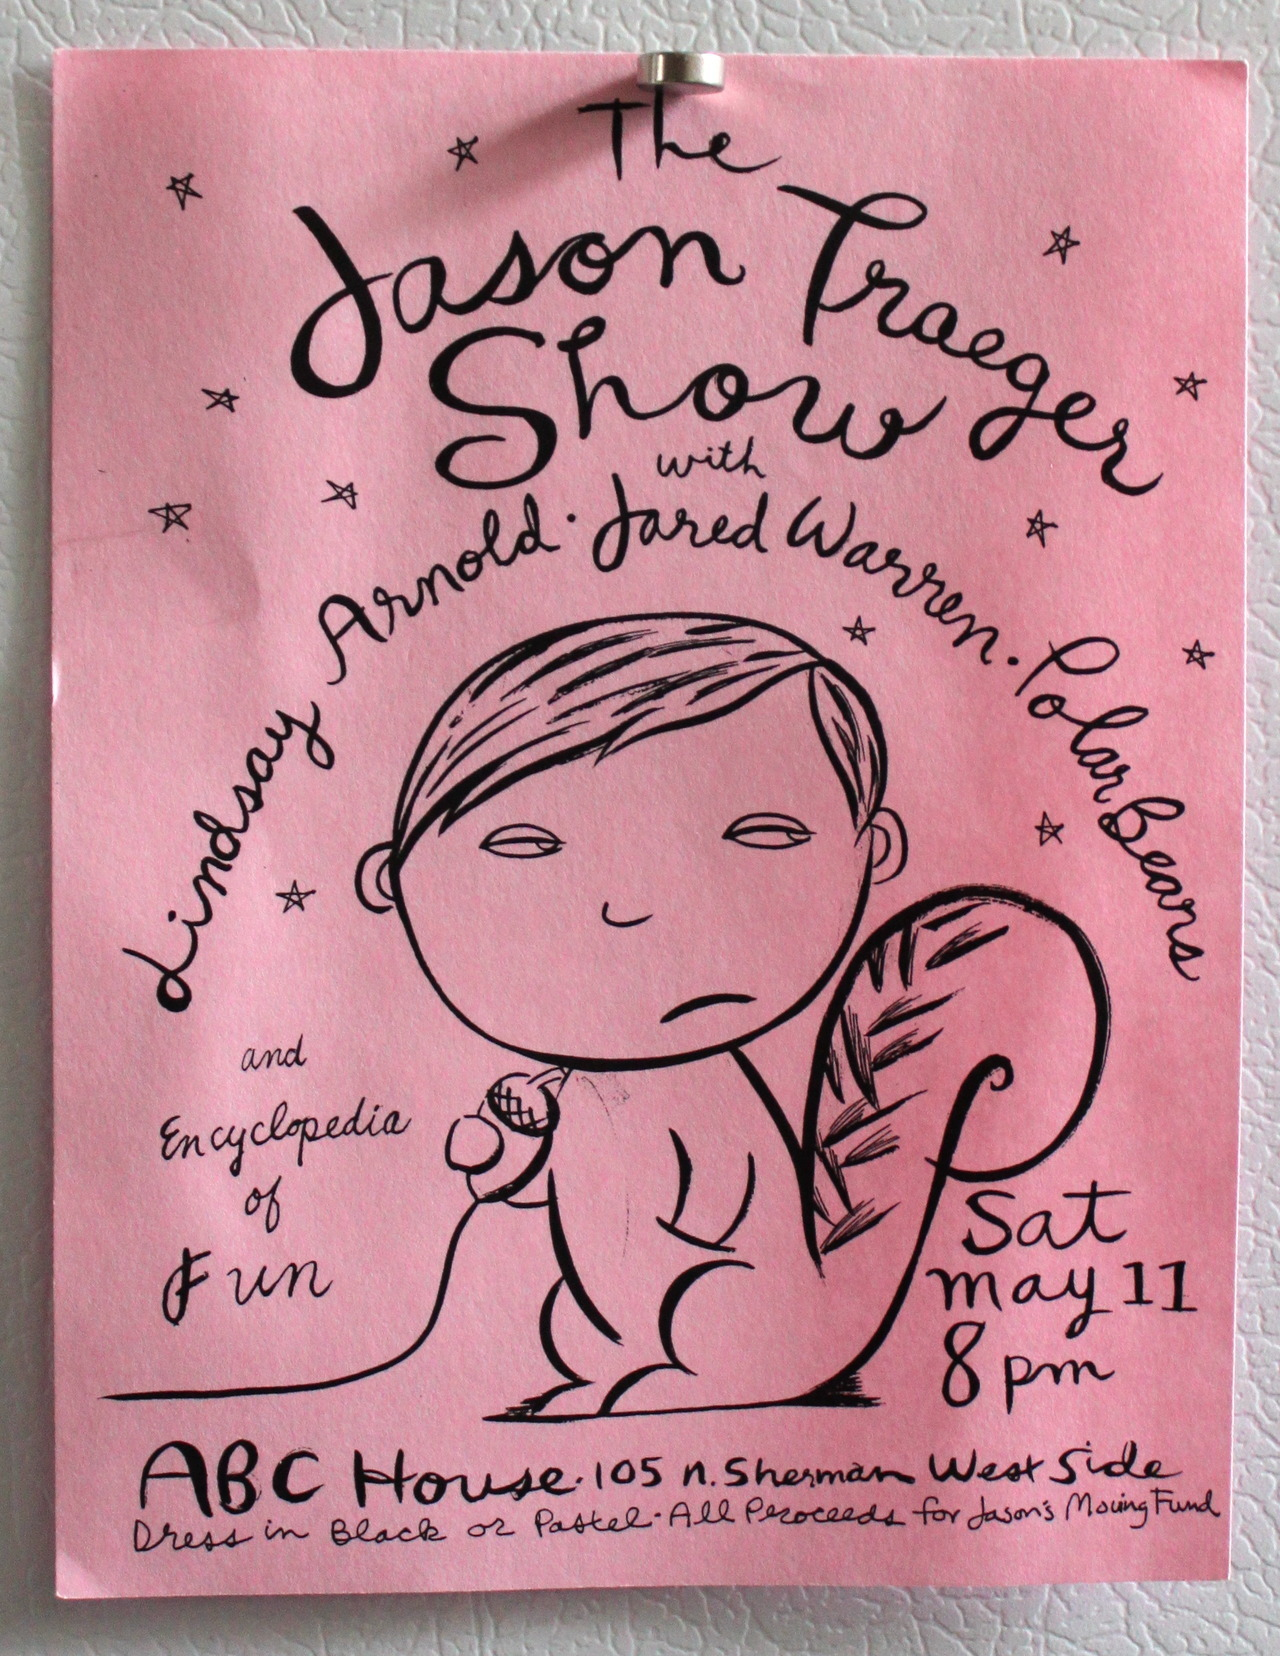 "THE JASON TRAEGER SHOW  OLYMPIA 2000  My Stand-up comedy career can be divided into three periods. As a child I made a practice of memorizing routines and bits by Cheech and Chong, Steve Martin and George Carlin to perform for my friends and classmates. In fact my first performance in front of an audience was in 1977 when I did a medley of bits culled from Steve Martin's classic albums of that era in front of my fourth grade class at Moorlands Elementary School in Bothell, Wa.  I was a big hit with the kids but my teacher was less approving. She was especially upset when I did the joke ""…when a person asks me in a restaurant 'mind if I smoke?', I ask them 'mind if I fart?'"" Of course the joke that drew the most ire from my teacher got the biggest laugh of all from the kids. I was hooked! As a nine year old stand-up in the late 70's I found it exceedingly difficult to make a career of it. This was, after all, a few years before the comedy explosion of the 80's and at the time I wasn't allowed to stay up past 9pm so it was tough. Once I'd exhausted all the audiences in my immediate surroundings I put my comedy dreams on the back burner to pursue the completion of my primary school education. It wasn't until about 25 years later while living in Olympia, WA. that I got back into Stand-up. I don't remember exactly what inspired me to start hitting open mics at that time. I do remember feeling inspired after seeing Mitch Hedberg and Marc Maron a few months apart at a club in Oly that briefly hosted comedy around that time. I think those shows helped push me to give it another go. The time was right. This second, middle-era of my Stand-up career started primarily at Seattle's Comedy Underground and at Giggles out in the U District and then at Comedy Underground's Tacoma location. I eventually moved back to California (I'd lived there in the 80's and 90's) spending sometime in SF performing at places like Brainwash, then in LA performing at various spots around town most frequently at the Lucy's Laundromat on Sunset in Silverlake. This era culminated with a national tour I did doing Stand-up as an opener for musical acts Scout Niblett and Swearing at Motorists. I learned a lot on that tour. Among other things I learned that doing Stand-up in Baton Rouge, LA. at a biker/frat bar is not for the faint of heart. I also learned that while it seems like a bad idea to do a fistful of magic mushrooms before going onstage in front of hundreds in Dallas, TX., it's not as bad an idea as you might think. When I got back to LA after that tour I didn't know which way was up and I'd pretty much lost the trail completely in my life. I just didn't have the center of gravity to do much of anything so I moved back to the Northwest, bounced around a little, went to art school, studied painting, blew through some money, played music, got jobs, left jobs, lost jobs, I was in a fantastic art collective called Oregon Painting Society that did comedy shows from time to time, did tons of shows with OPS, performed at the Tate Modern in London, quit drugs and alcohol, did a couple Stand-up shows in art-world settings, and all kinds of other stuff. About five months ago I started doing Stand-up again here in Portland. This begins the third chapter of my career. I don't know why I started back up exactly. It's true I was running out of patience with the vagaries of the art world, I couldn't afford to throw every penny toward a painting career that got plenty of attention but almost no sales at all, I also was transitioning into being single again, and I was frankly a little bored with music. I wanted a form of expression that was compatible with working a lot and being strapped for cash. More than anything else though I just felt a calling to get back into it. In Portland I've found Stand-up comedy heaven. It's a great scene with tons of open mics in a bunch of great rooms. There are a slew of talented young and not-so young comics, the scene is creative, fresh, friendly and I can't imagine it's not at the beginning of a comedy explosion of sorts. All the pieces are in place. I am more excited by and engaged in comedy than I've ever been and it feels great.  I've also been able to combine my love of visual art with my comedy career by sketching the ever changing faces and places of Portland comedy. I show my drawings on my Portland Stand-up Comedy Sketchbook Tumblr. The above flyer is from a show at the ABC house in Olympia that was a held as a fundraising benefit prior to my move to California. I'm a little unsure as to what year that would've been. 2000 maybe? The flyer was drawn by my dear friend and brilliant artist Tae Won Yu. The bill featured my friends Lindsay Arnold who was making the rounds as a Stand-up at the time and Jared Warren of KARP, The Whip, Big Business and Melvins fame. Jared was between bands and was another one of my Stand-up Comedy mates for my trips up to Seattle to The Comedy Underground. Both Jared and Lindsay were and still are hilarious. Lindsay is a lawyer now and Jared is a rockstar still.  Me? I'm a Stand-up comic! If you wanna see me do my thing go to almost any open mic in Portland. If I'm not on stage just look for the guy with the sketchbook. (The Jason Traeger Show flyer by Tae Won Yu from my personal archives.)"